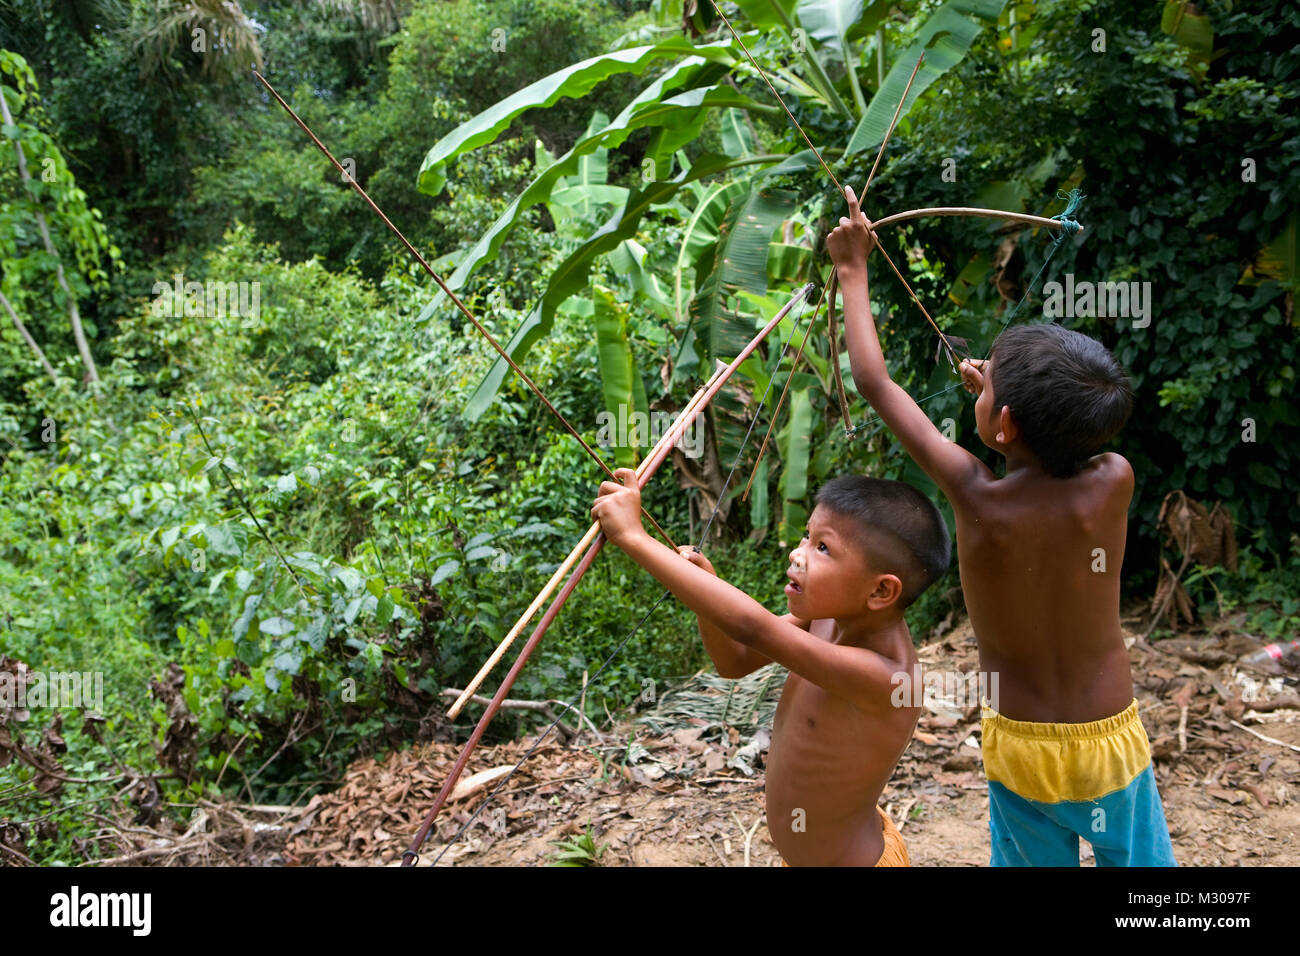 Suriname, Kwamalasamutu, home of indigenous Indians. Akurio indian children with bow and arrow. - Stock Image